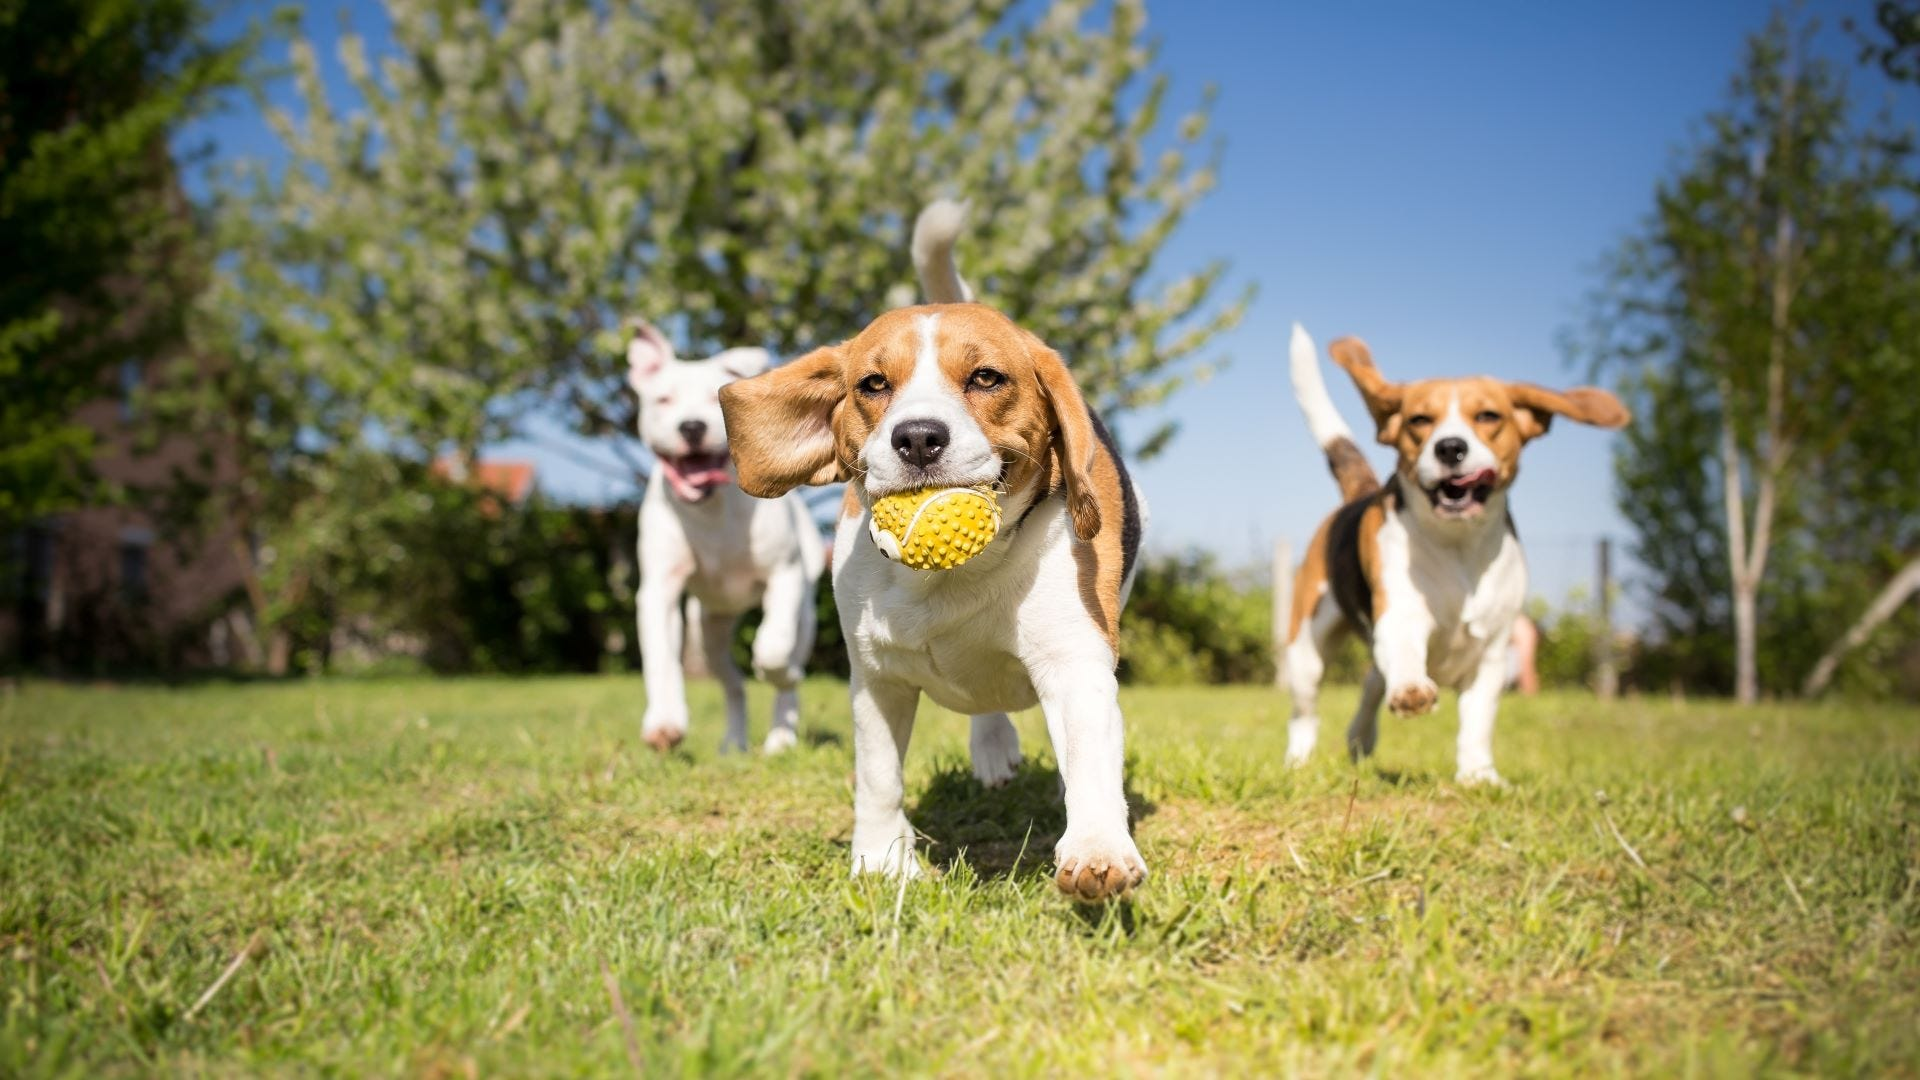 Two beagles and a pit bull playing with a ball at the dog park.